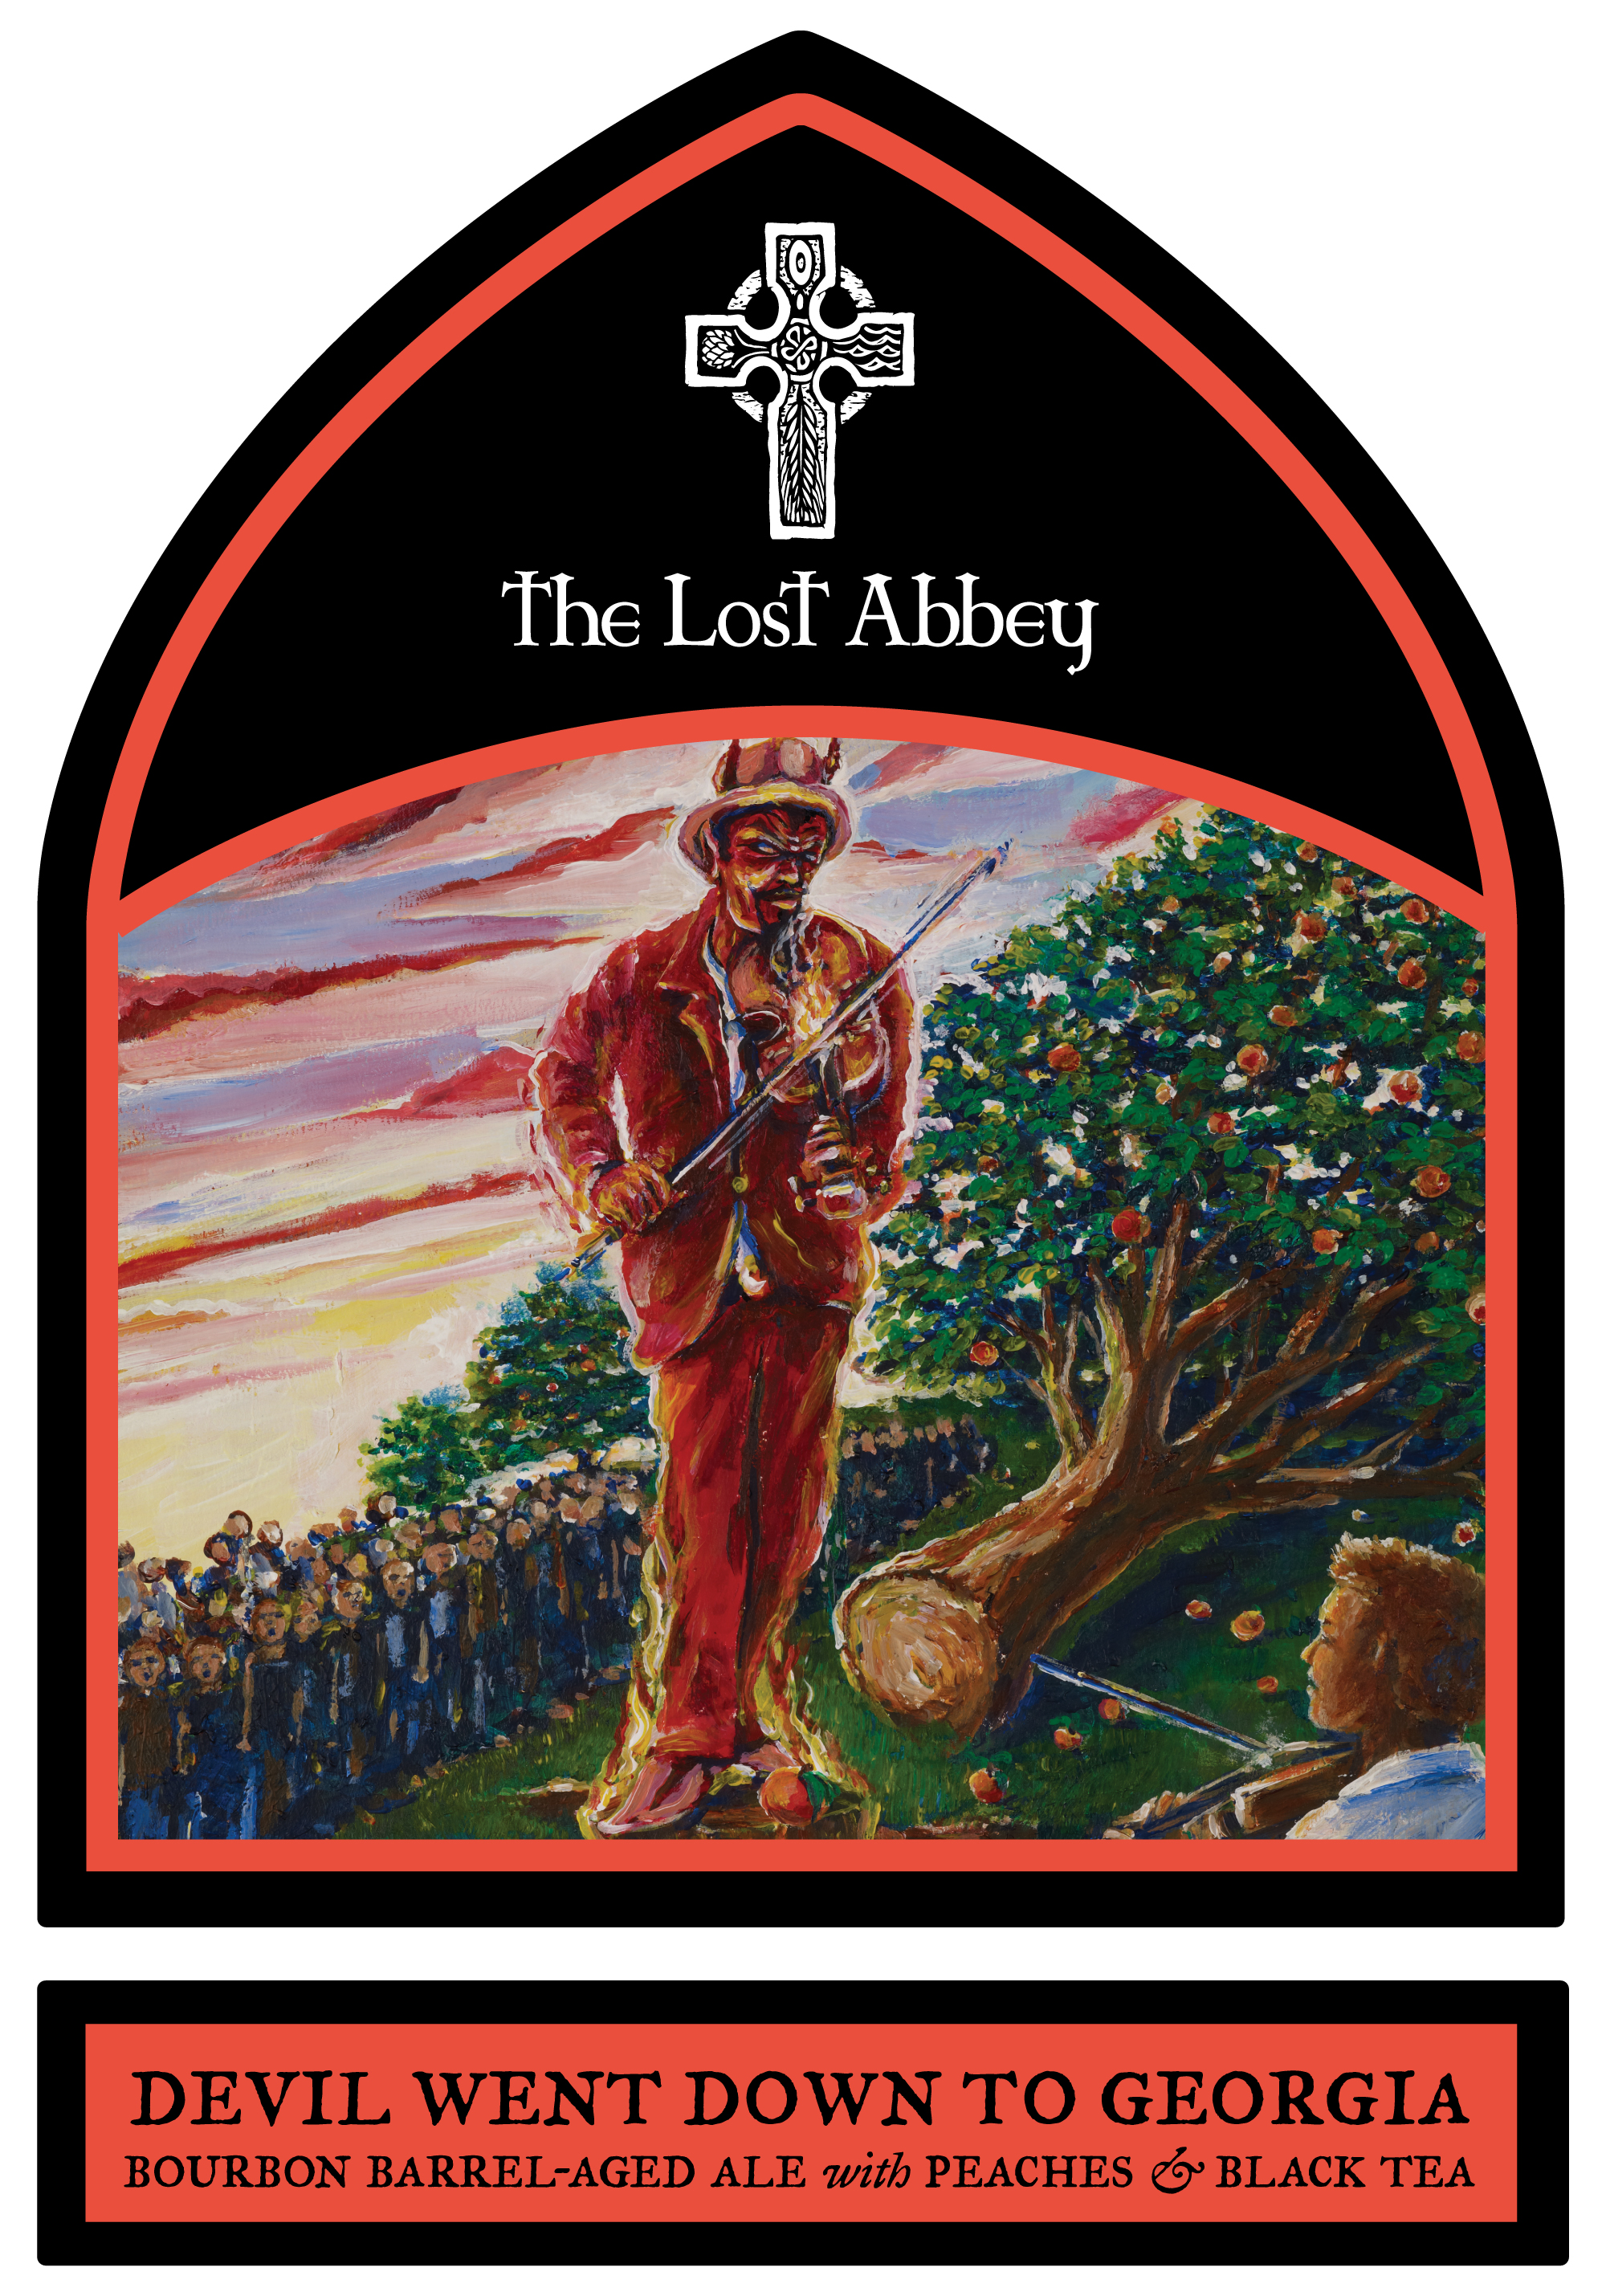 image courtesy The Lost Abbey